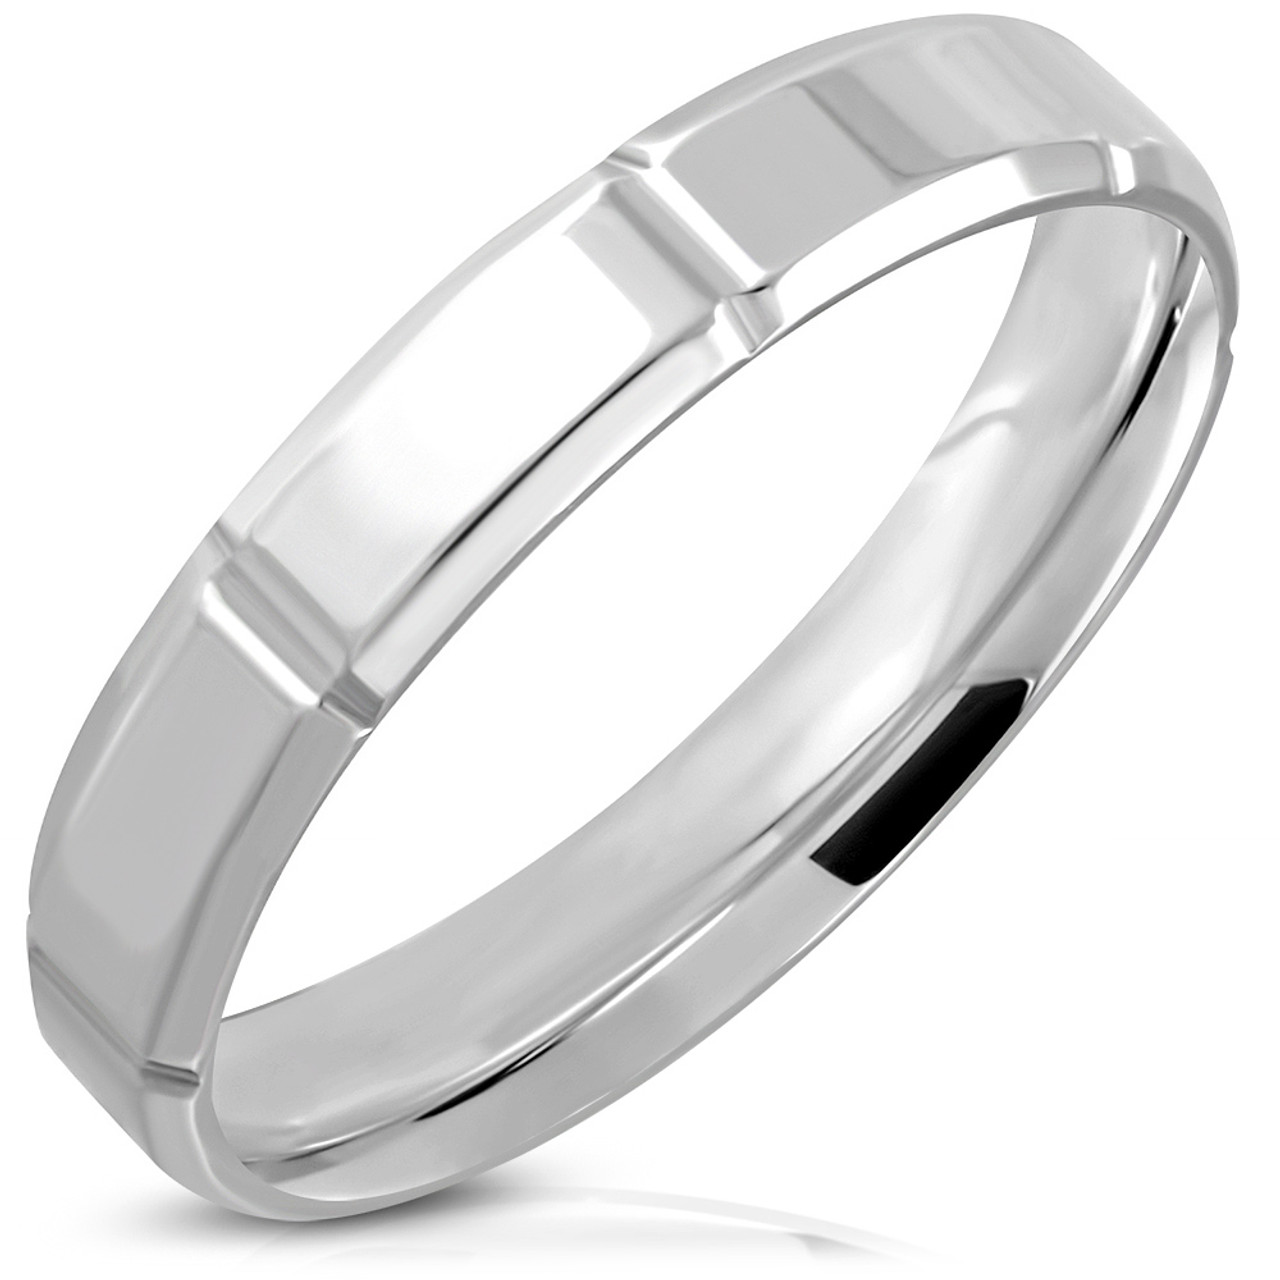 Stainless Steel 2 Color Affirmation-Love Grooved Cross Comfort Fit Wedding Flat Band Ring with Clear CZ